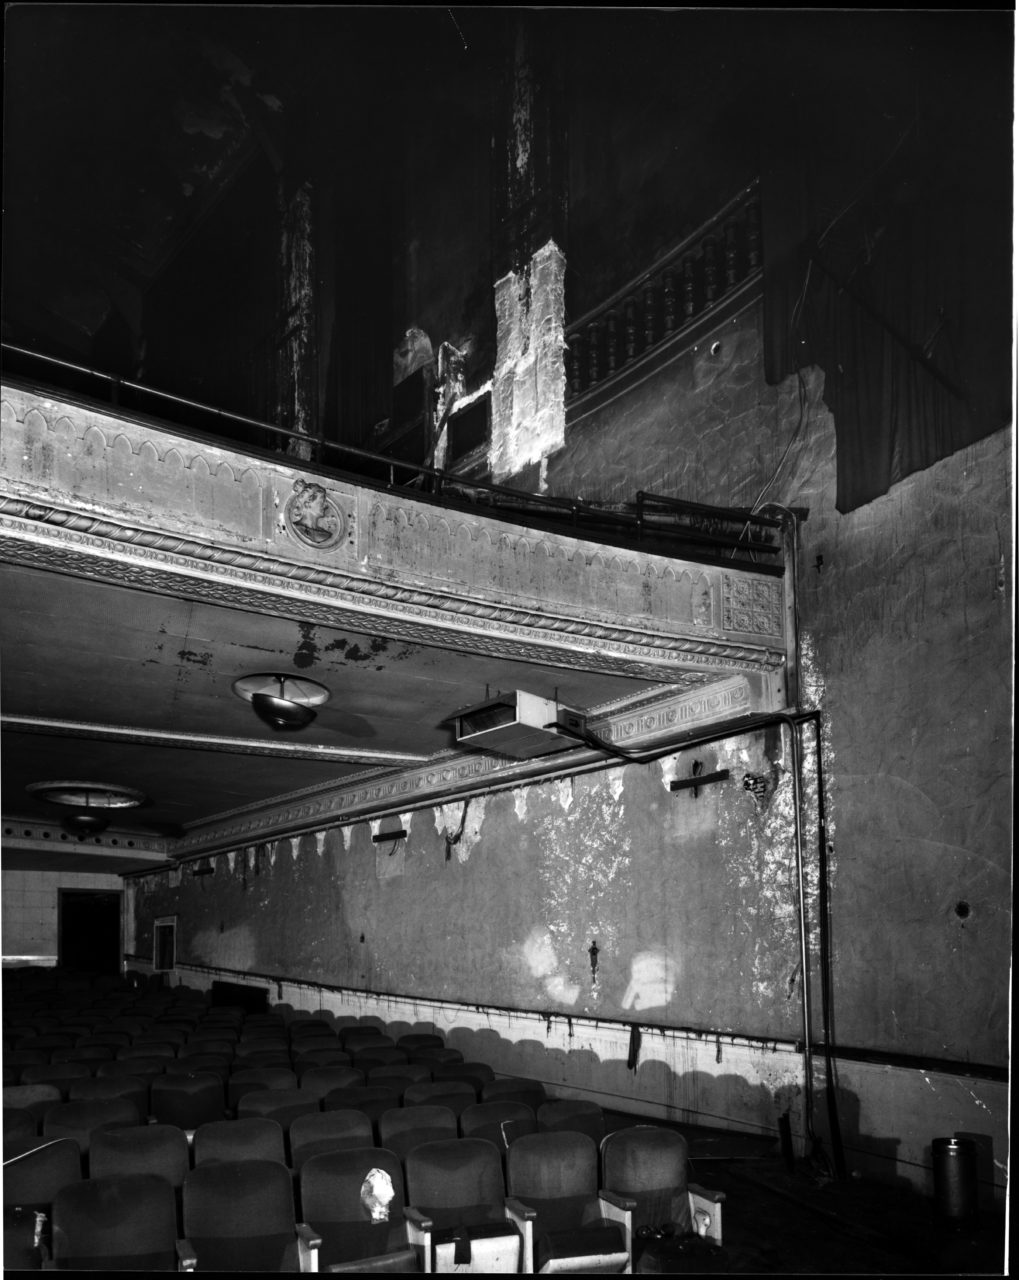 Orchestra seating after 1978 closing